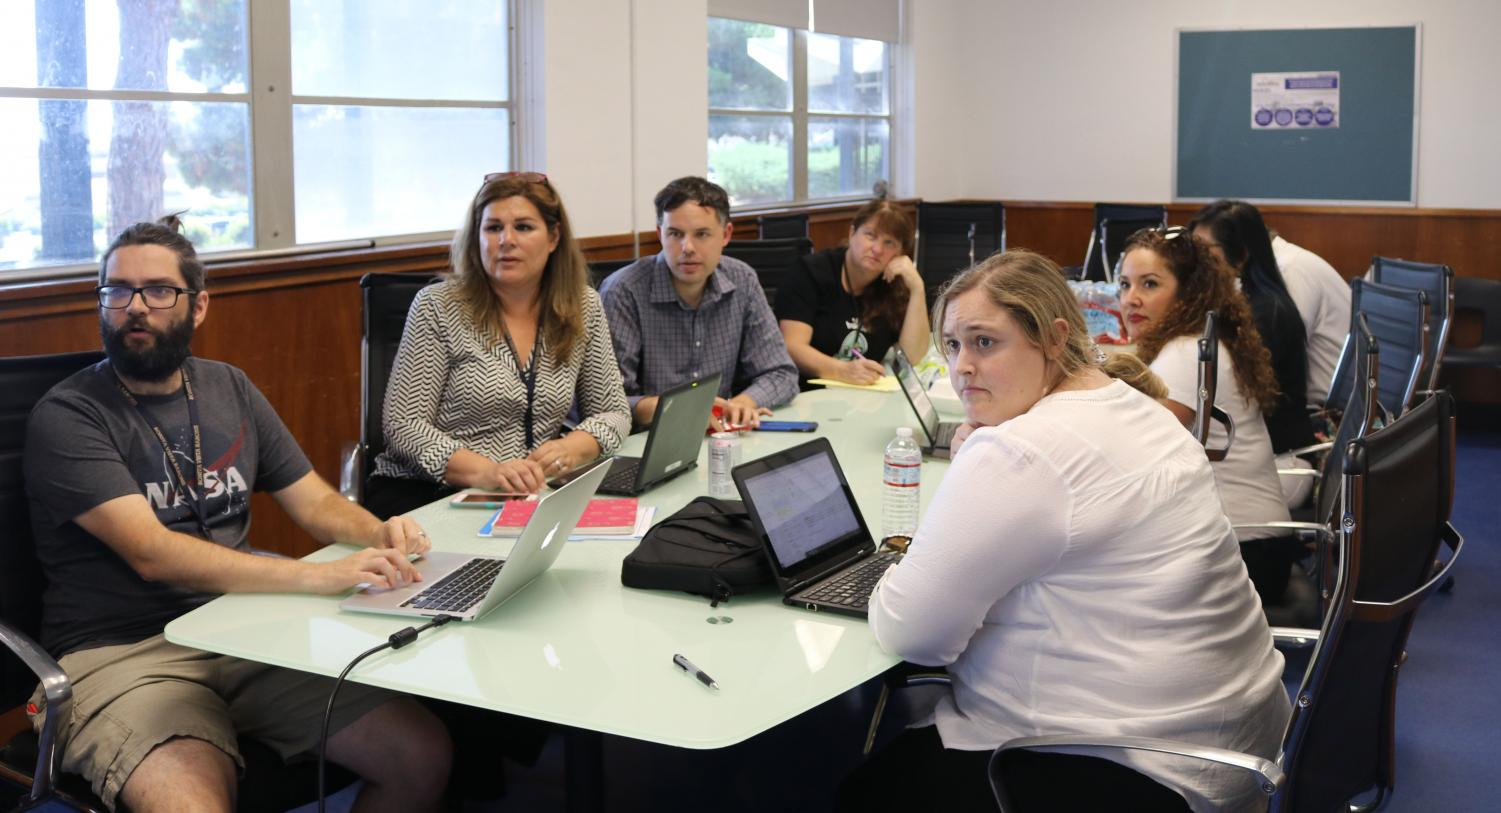 The College-Going Culture Committee gathers on Sep. 12 for their monthly meeting to discuss ways they can motivate students to apply for college and pursue at least a four year college education after high school.